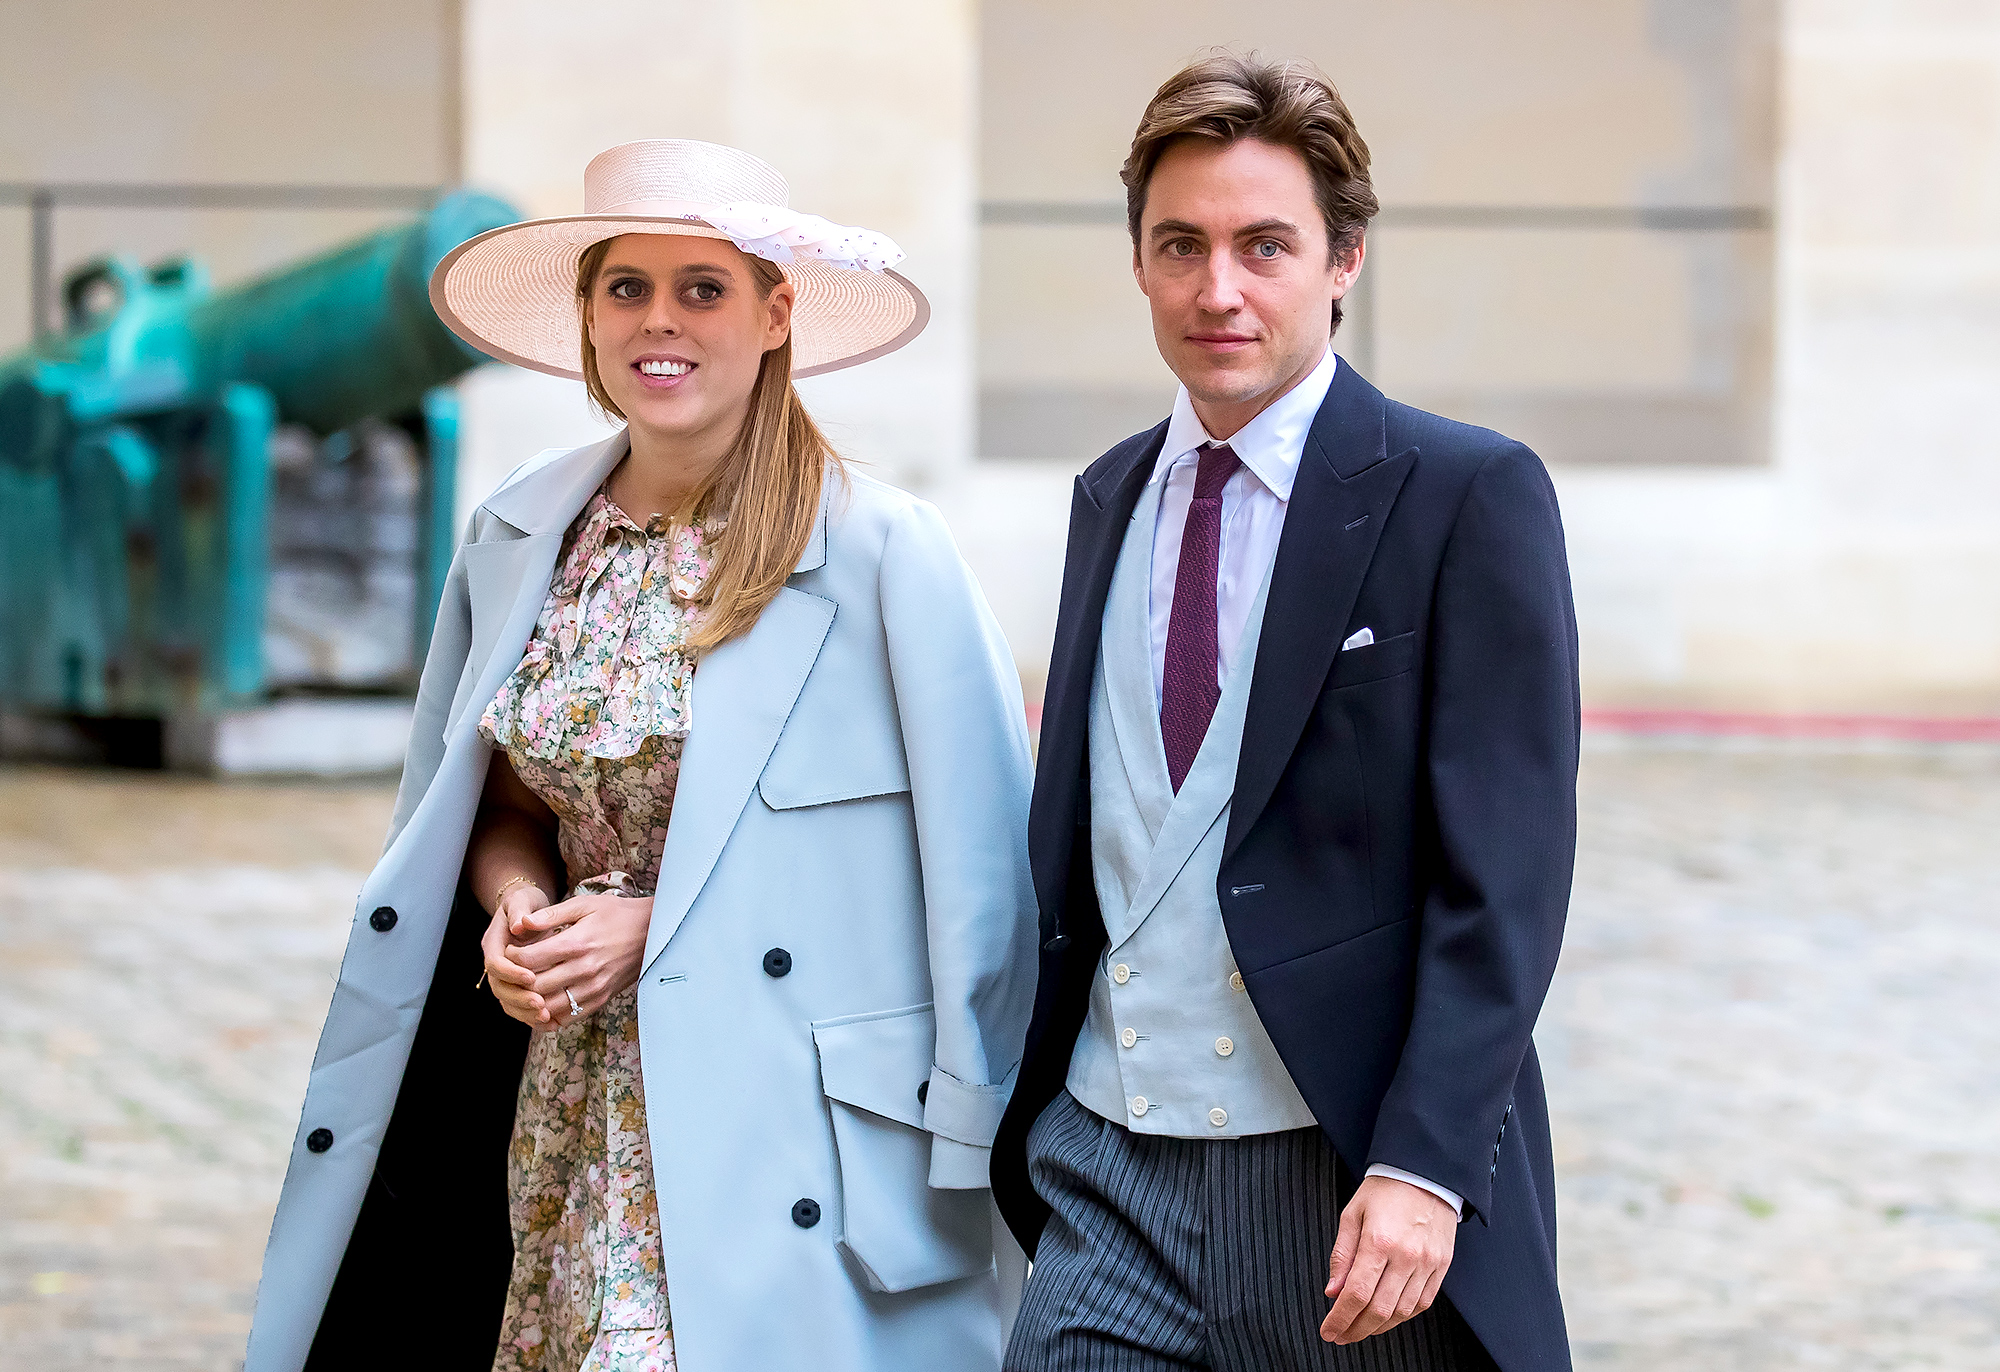 Princess Beatrice May Wedding Officially Canceled Amid Pandemic